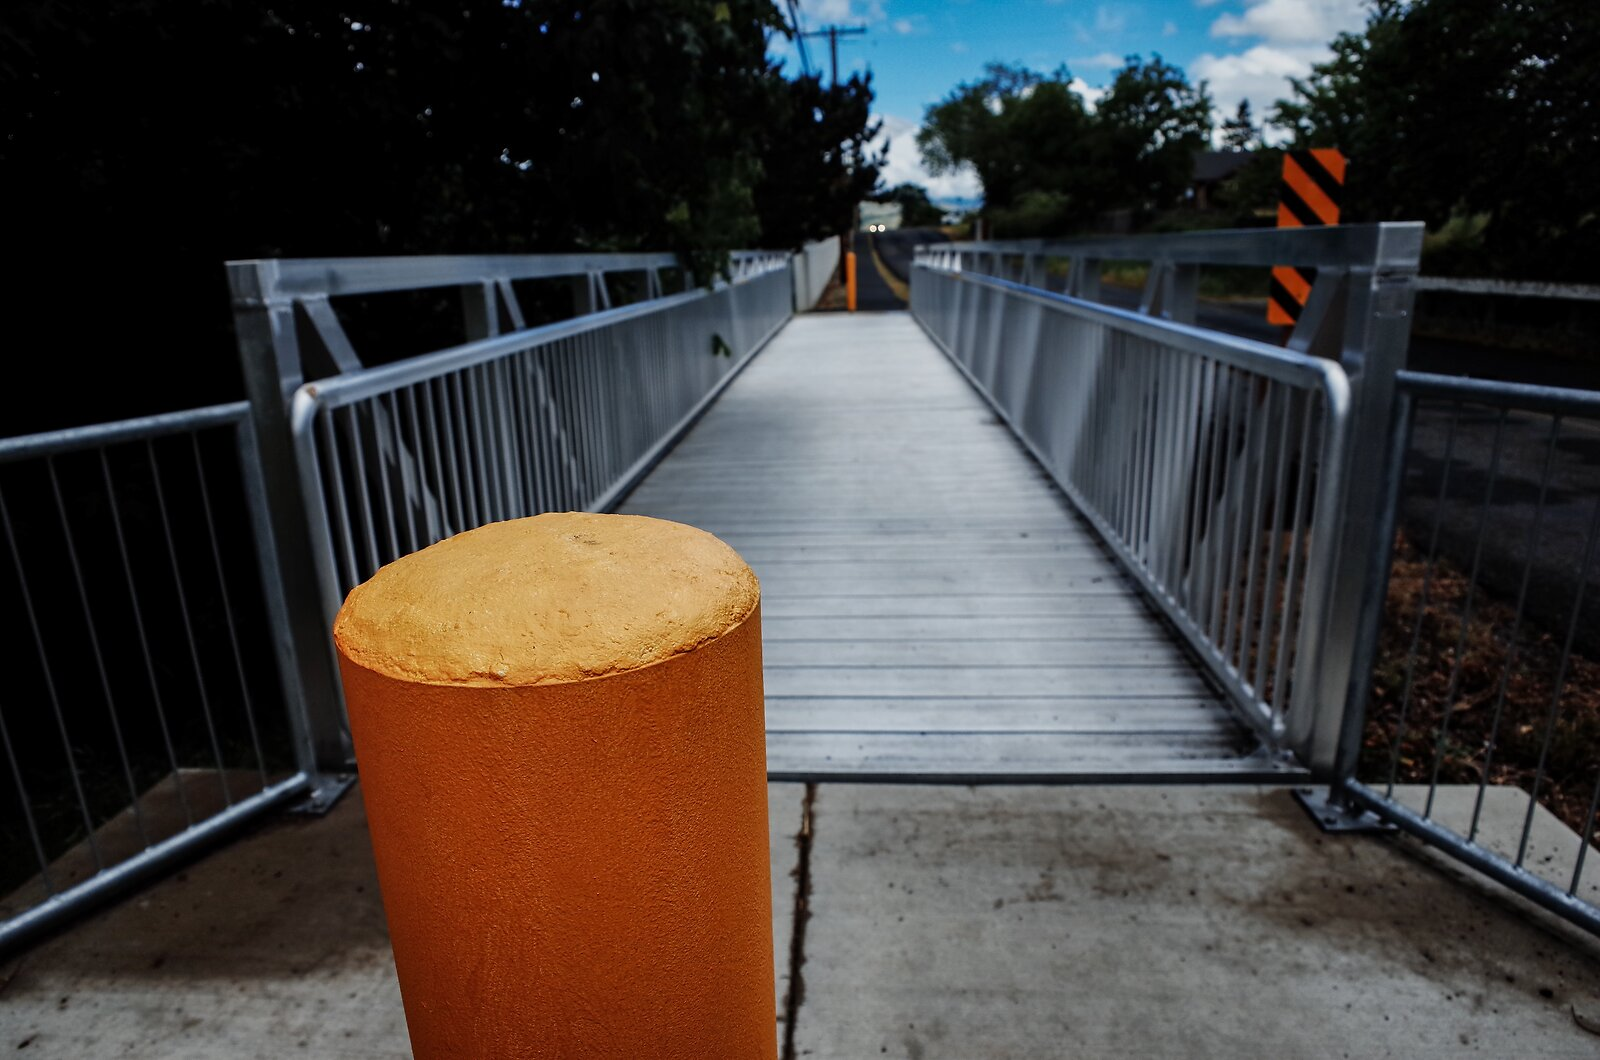 GRII_May14_pedestrian_bridge(PosFilm).jpg